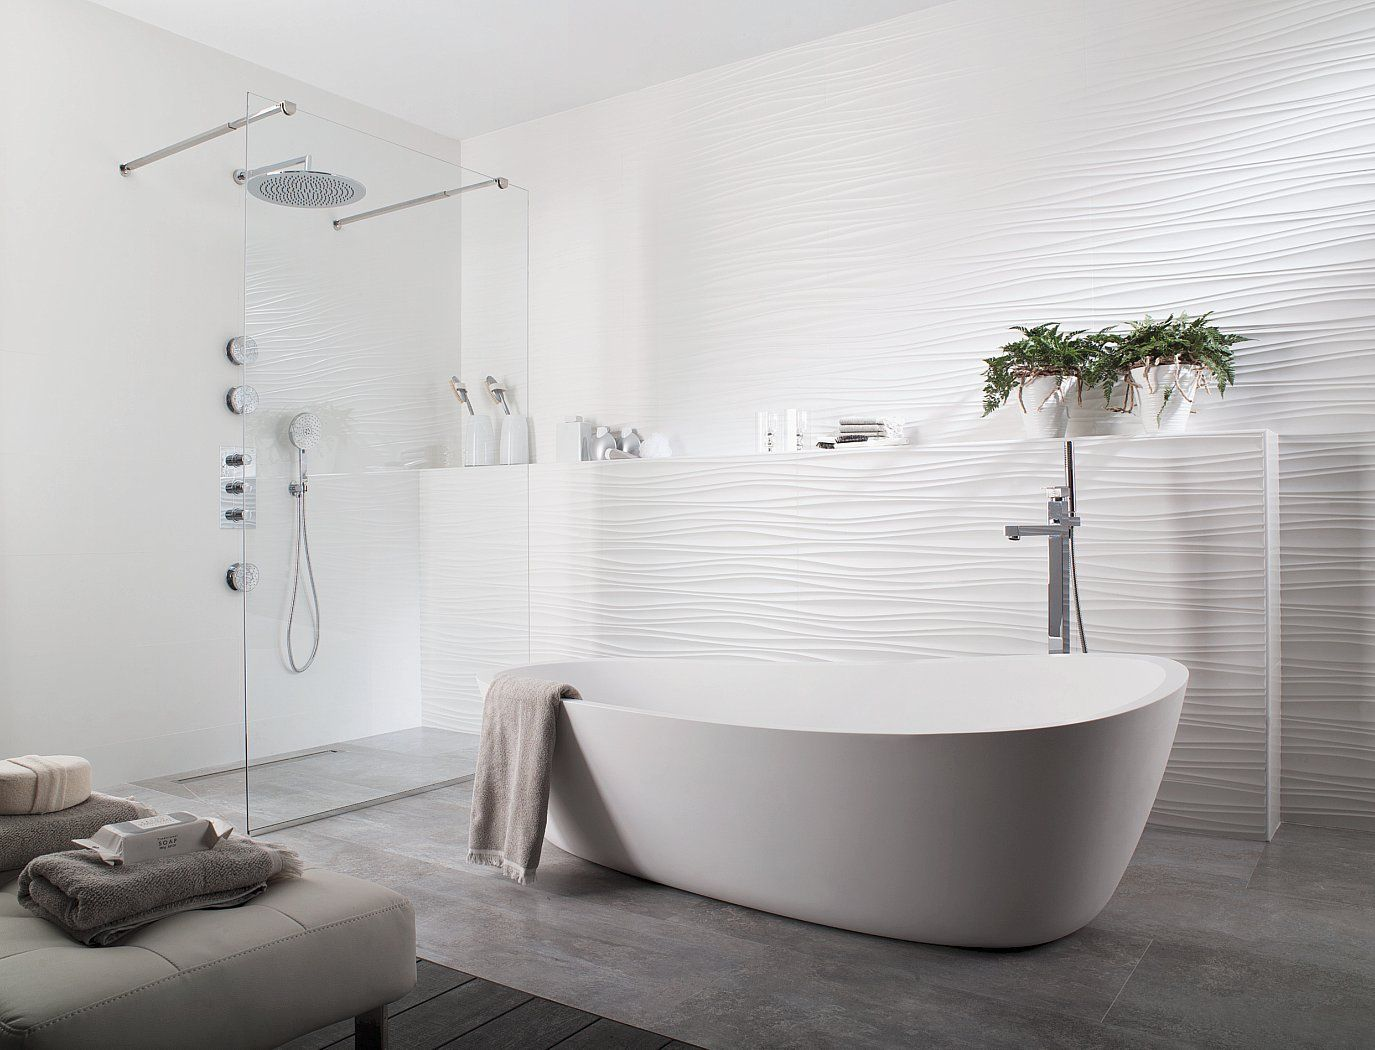 Ceramo Tiles Perth Aims To Offer The Perth Tile Buying Community A Refreshing And Innovative Modern Bathroom Tile White Bathroom Designs Modern White Bathroom